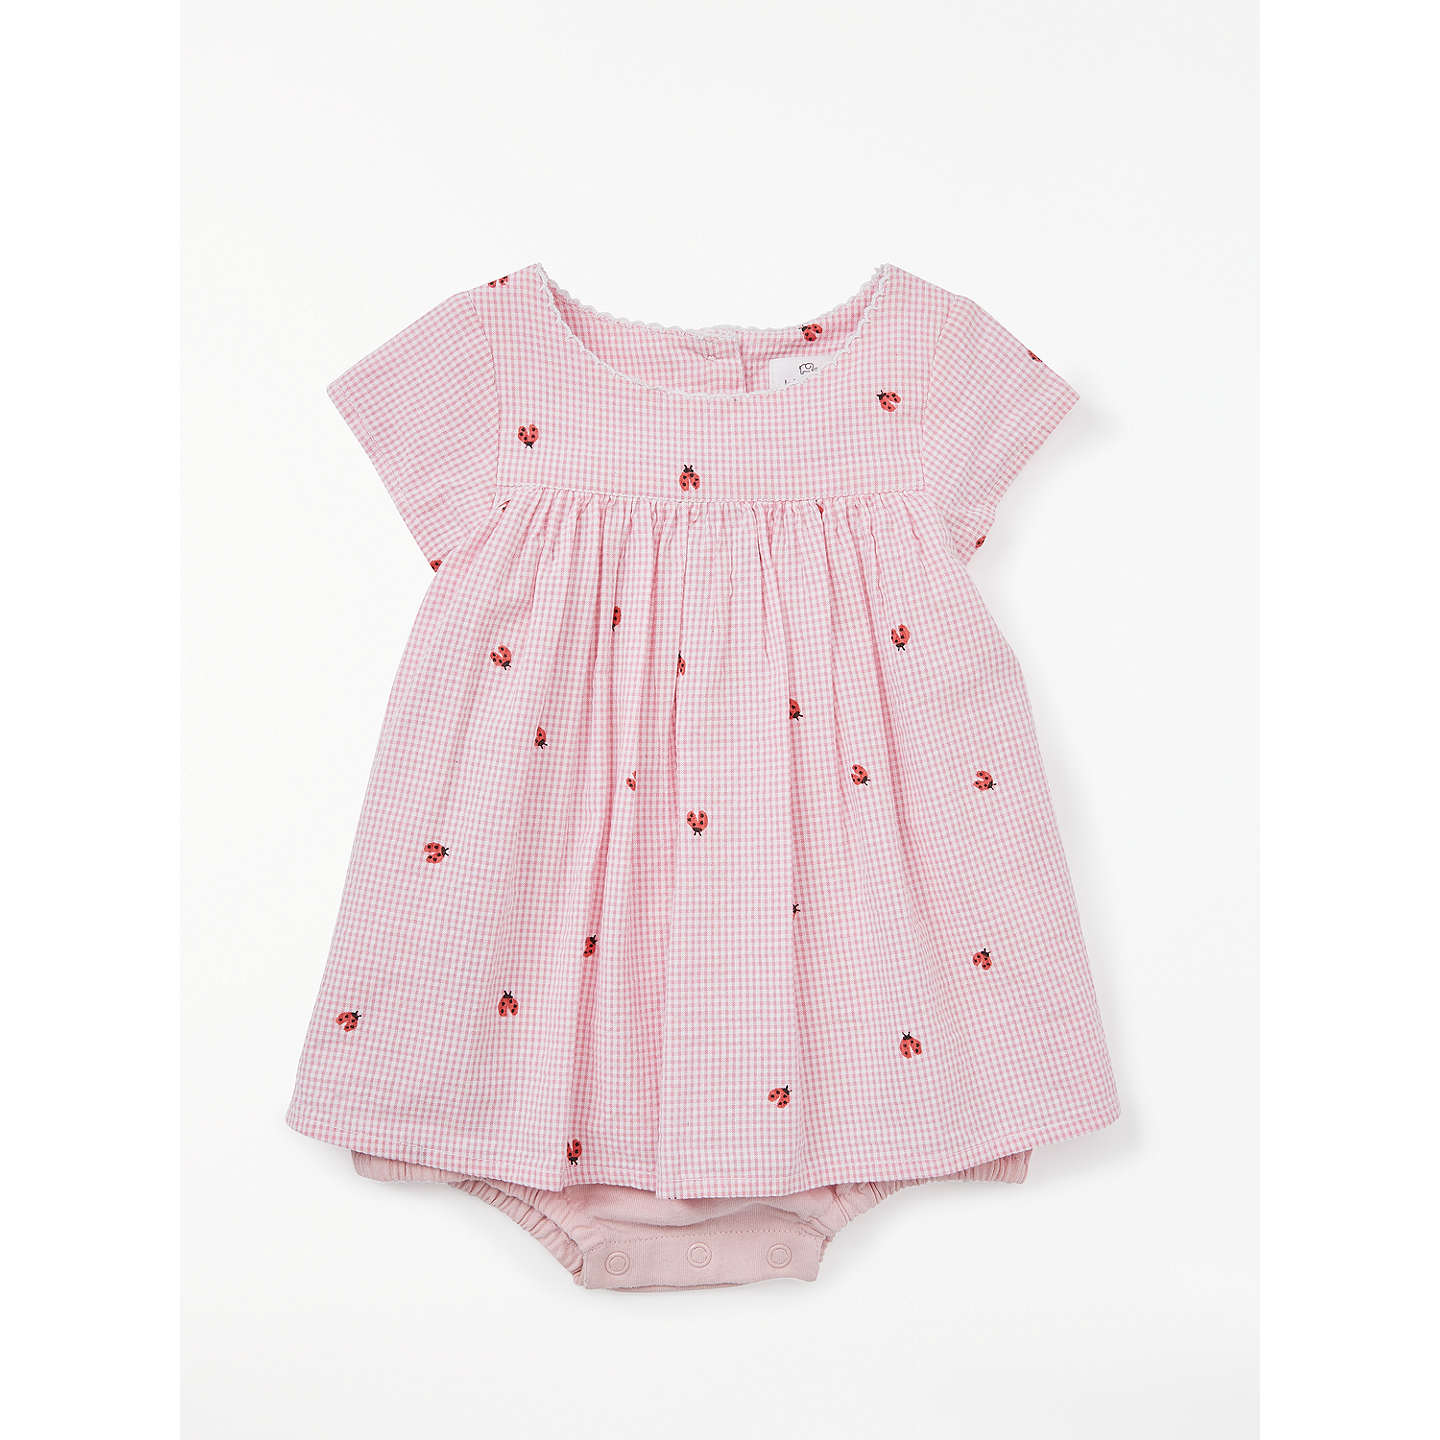 Lovely Pictures Of Newborn Baby Clothes Online - Cutest ...